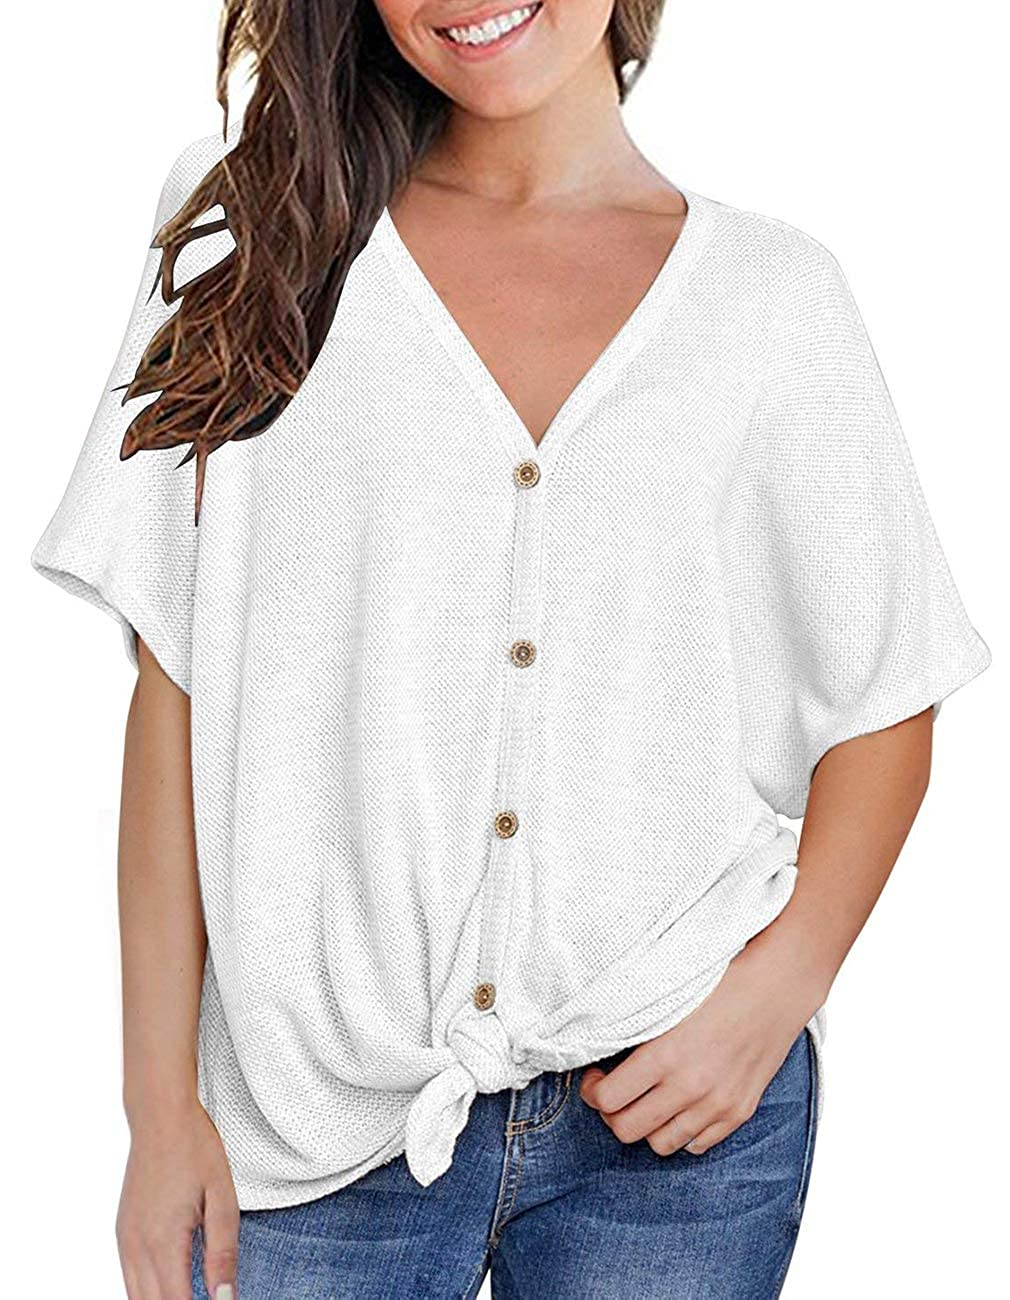 b8612f5c Top1: Defal Womens Sexy V Neck Short Sleeve Button Knitting Henley Shirt  Loose Front Tie Top